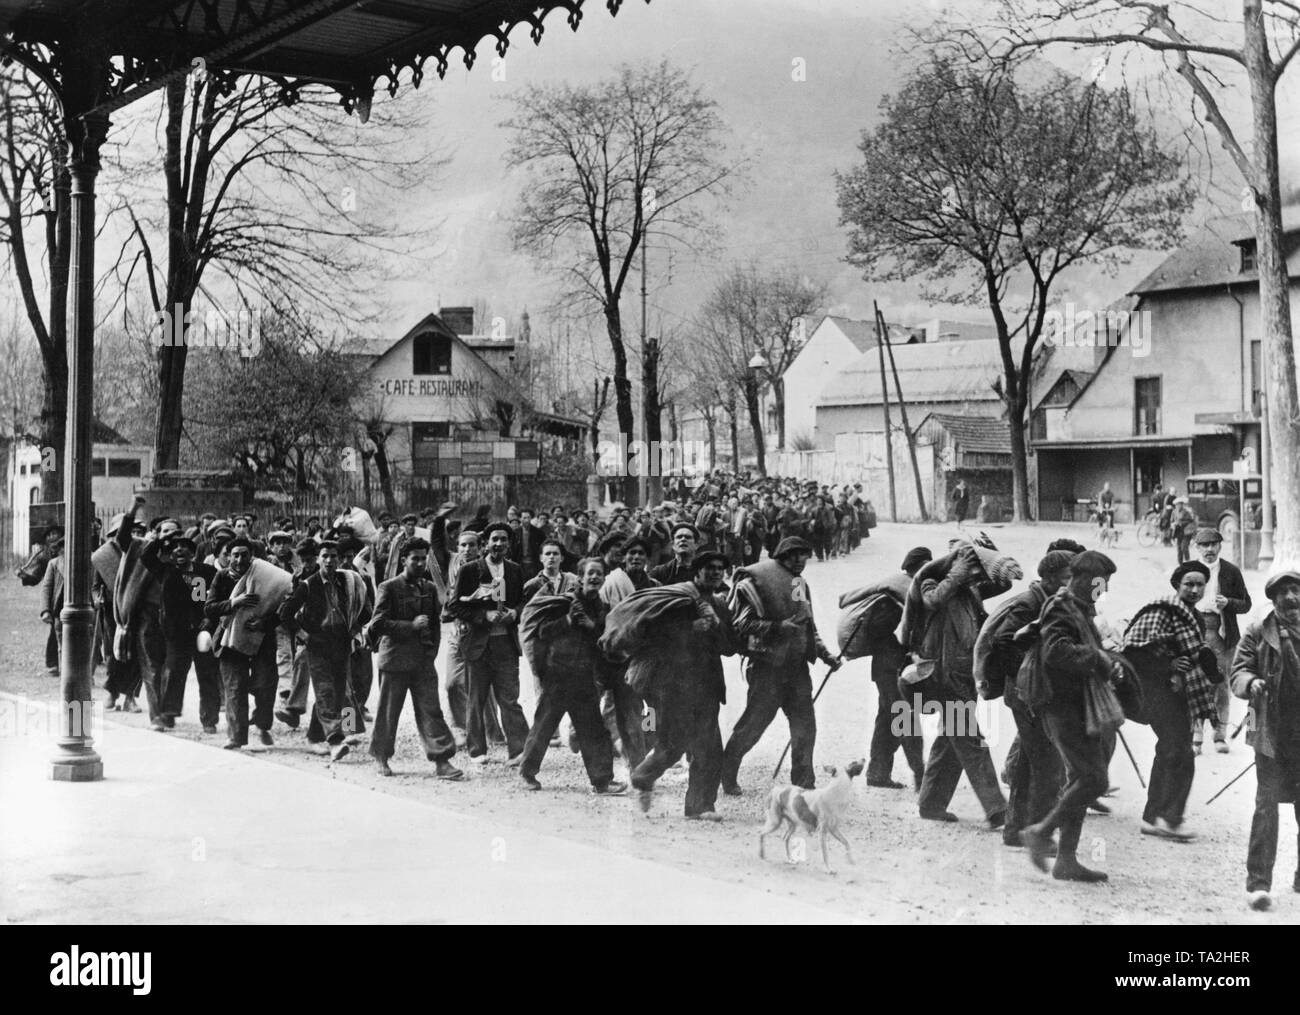 Photo of a column of former refugee Republican soldiers on the station square in the French Pyrenees-Bagneres-de-Luchon just behind the French-Spanish border. The men wear blankets, carry their luggage, and are already disarmed. They are watched by the inhabitants of Luchon. Photo from April, 1938. - Stock Image